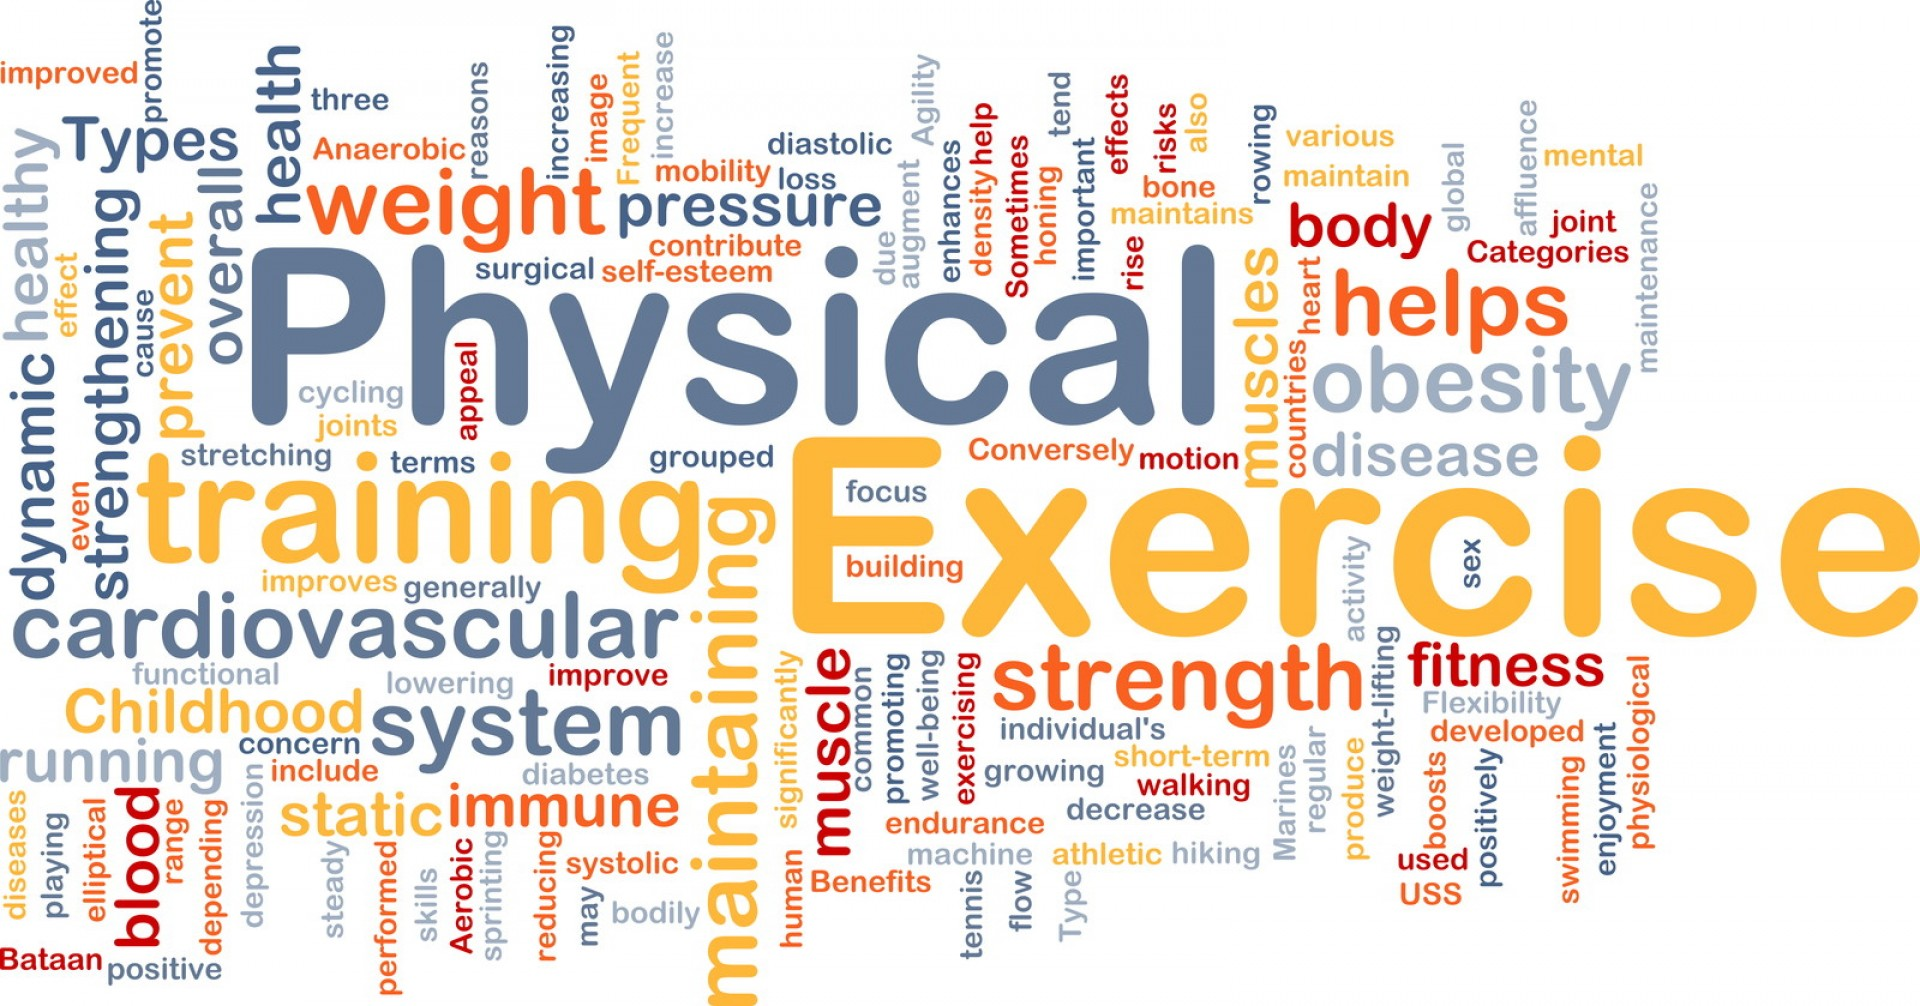 016 Call Doctor Benefits Of Physical Fitness Importance Exercise Essay Fascinating In Hindi Language On Sports And 1920